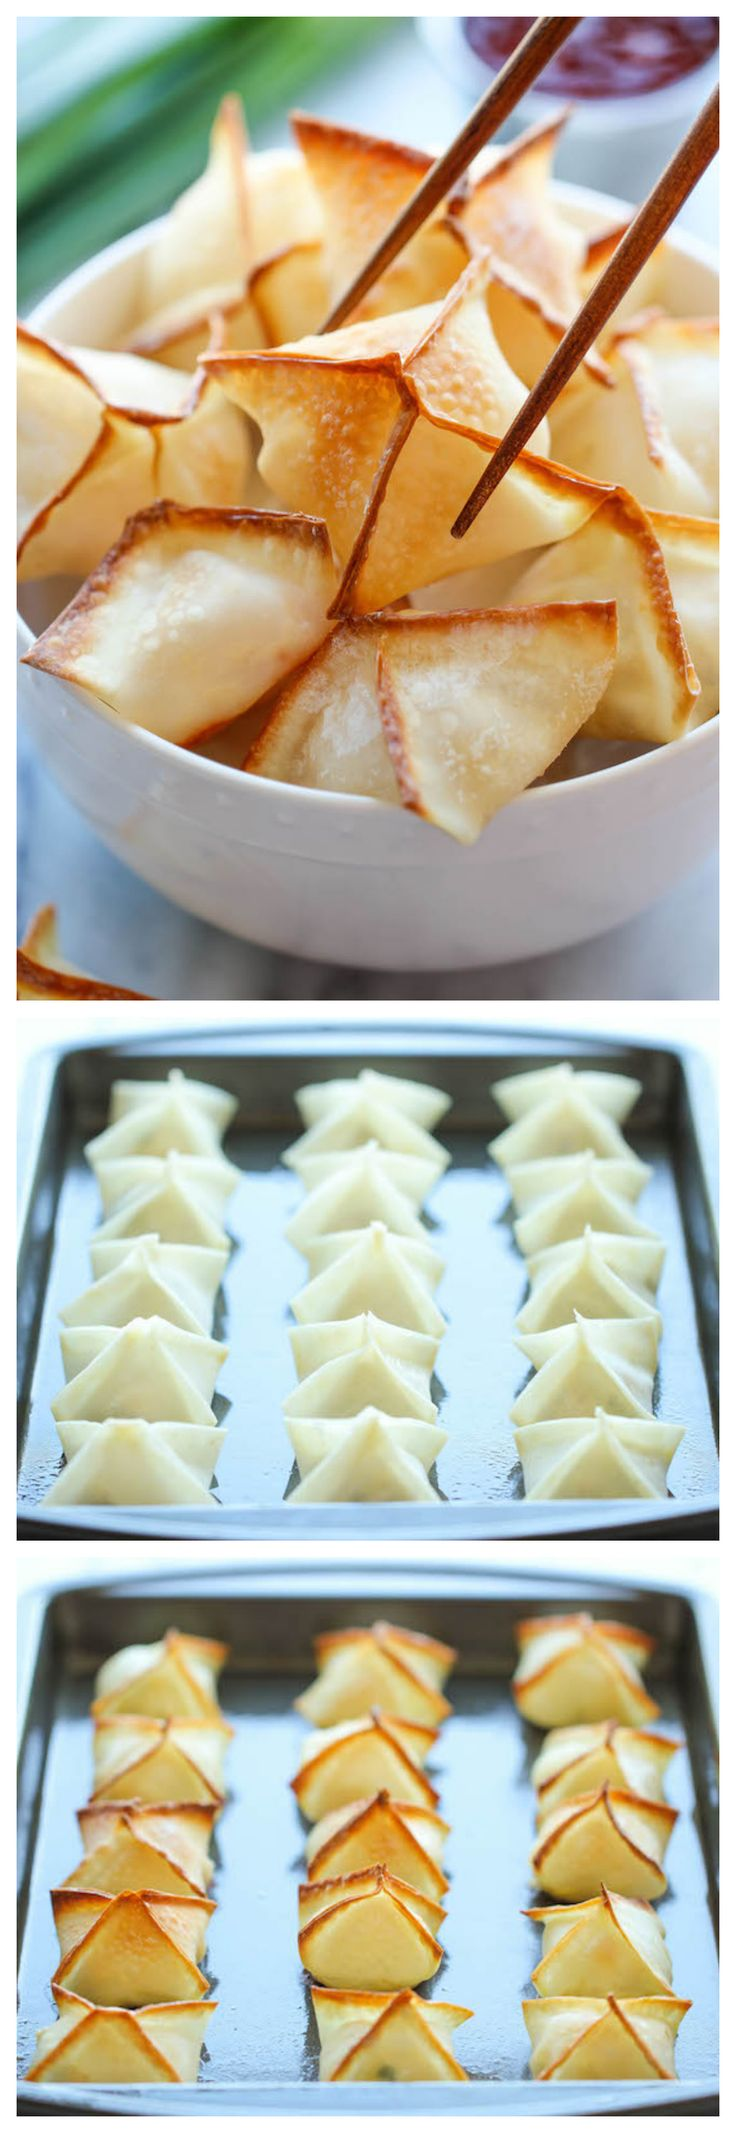 Cream Cheese Wonton | Gordelícias